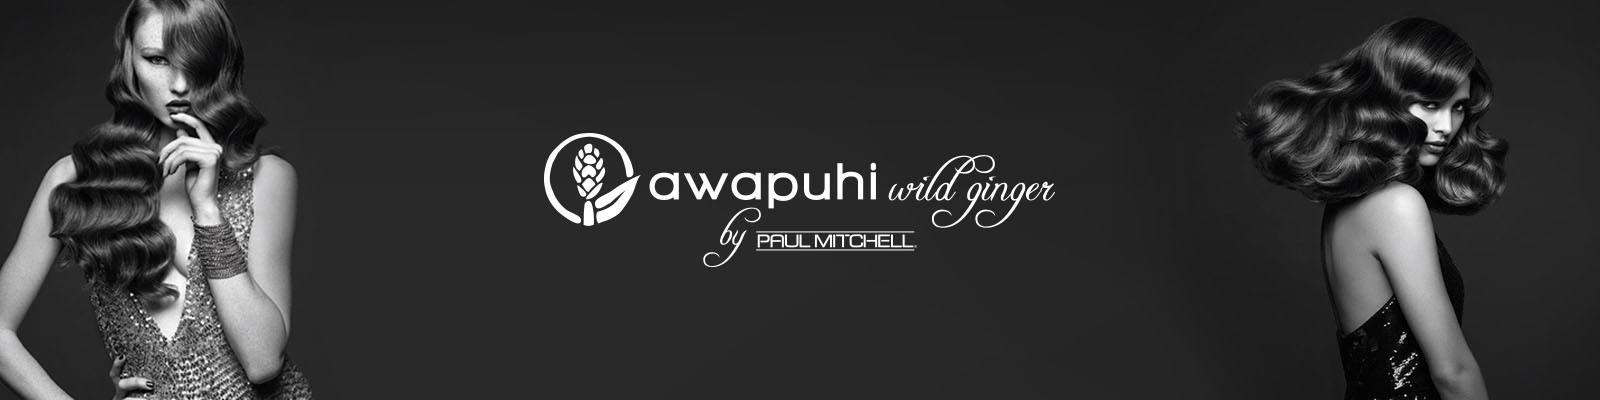 awaphui-paul-mitchell